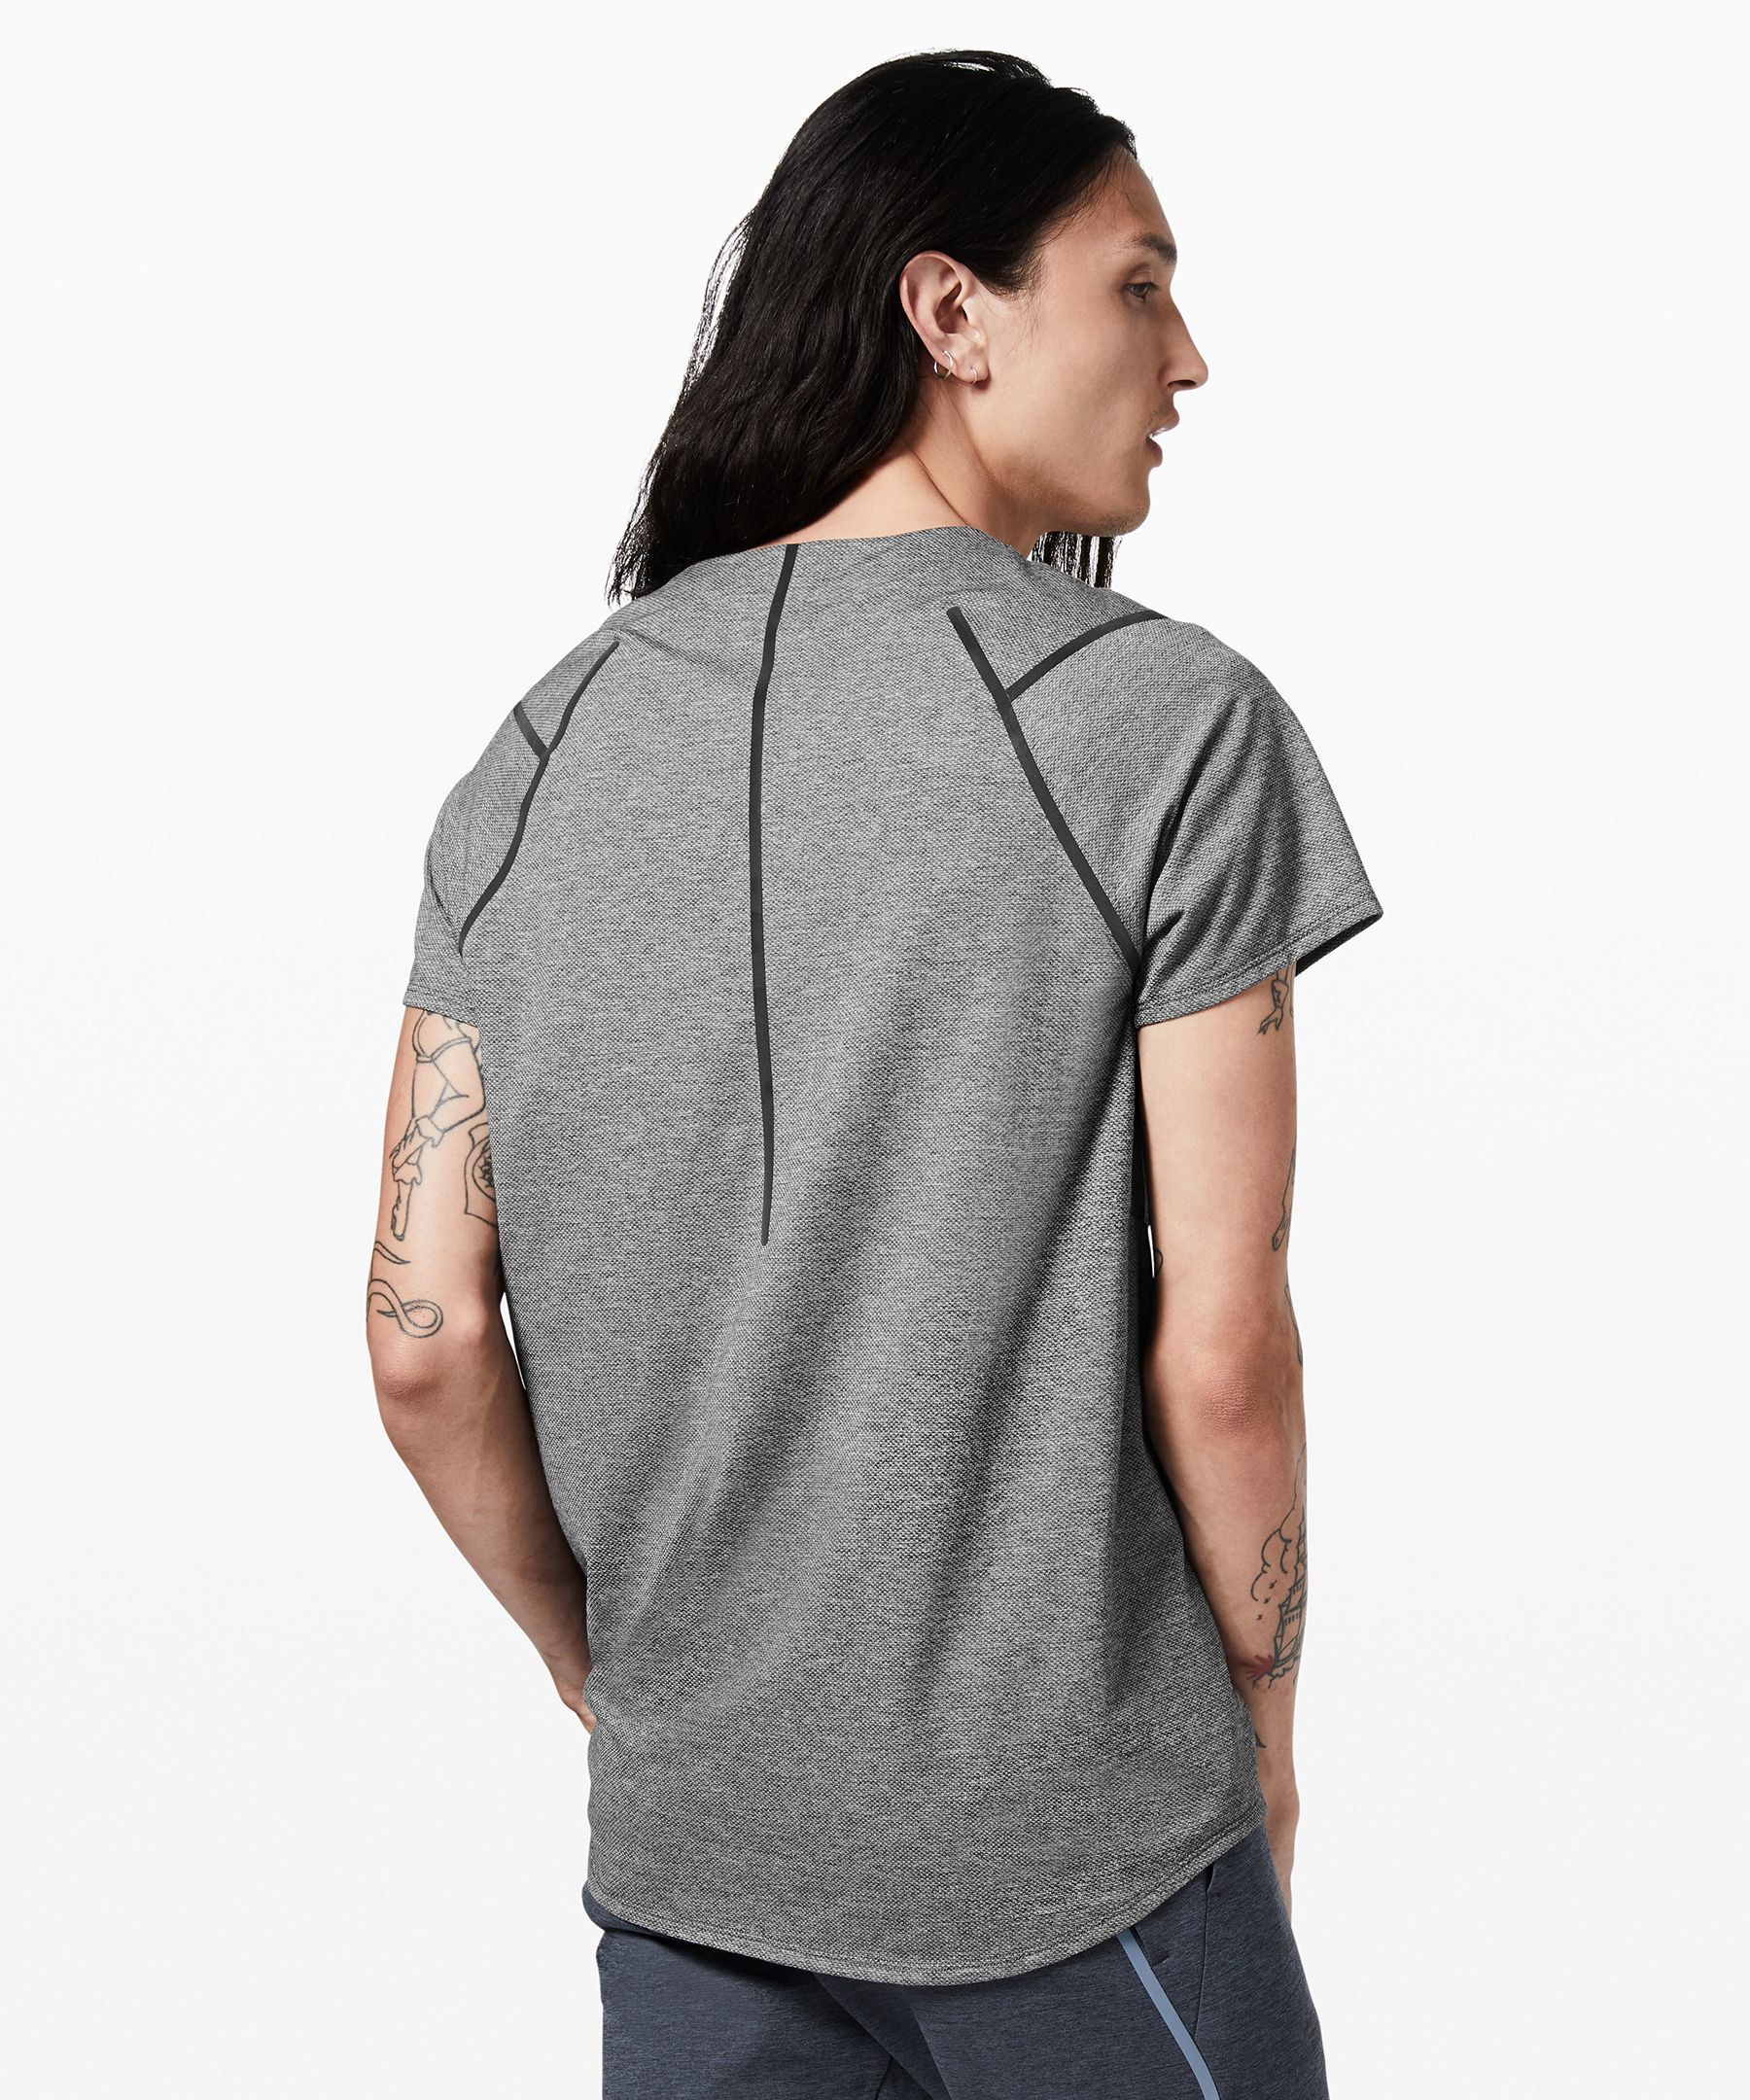 Refract Short Sleeve *lululemon lab